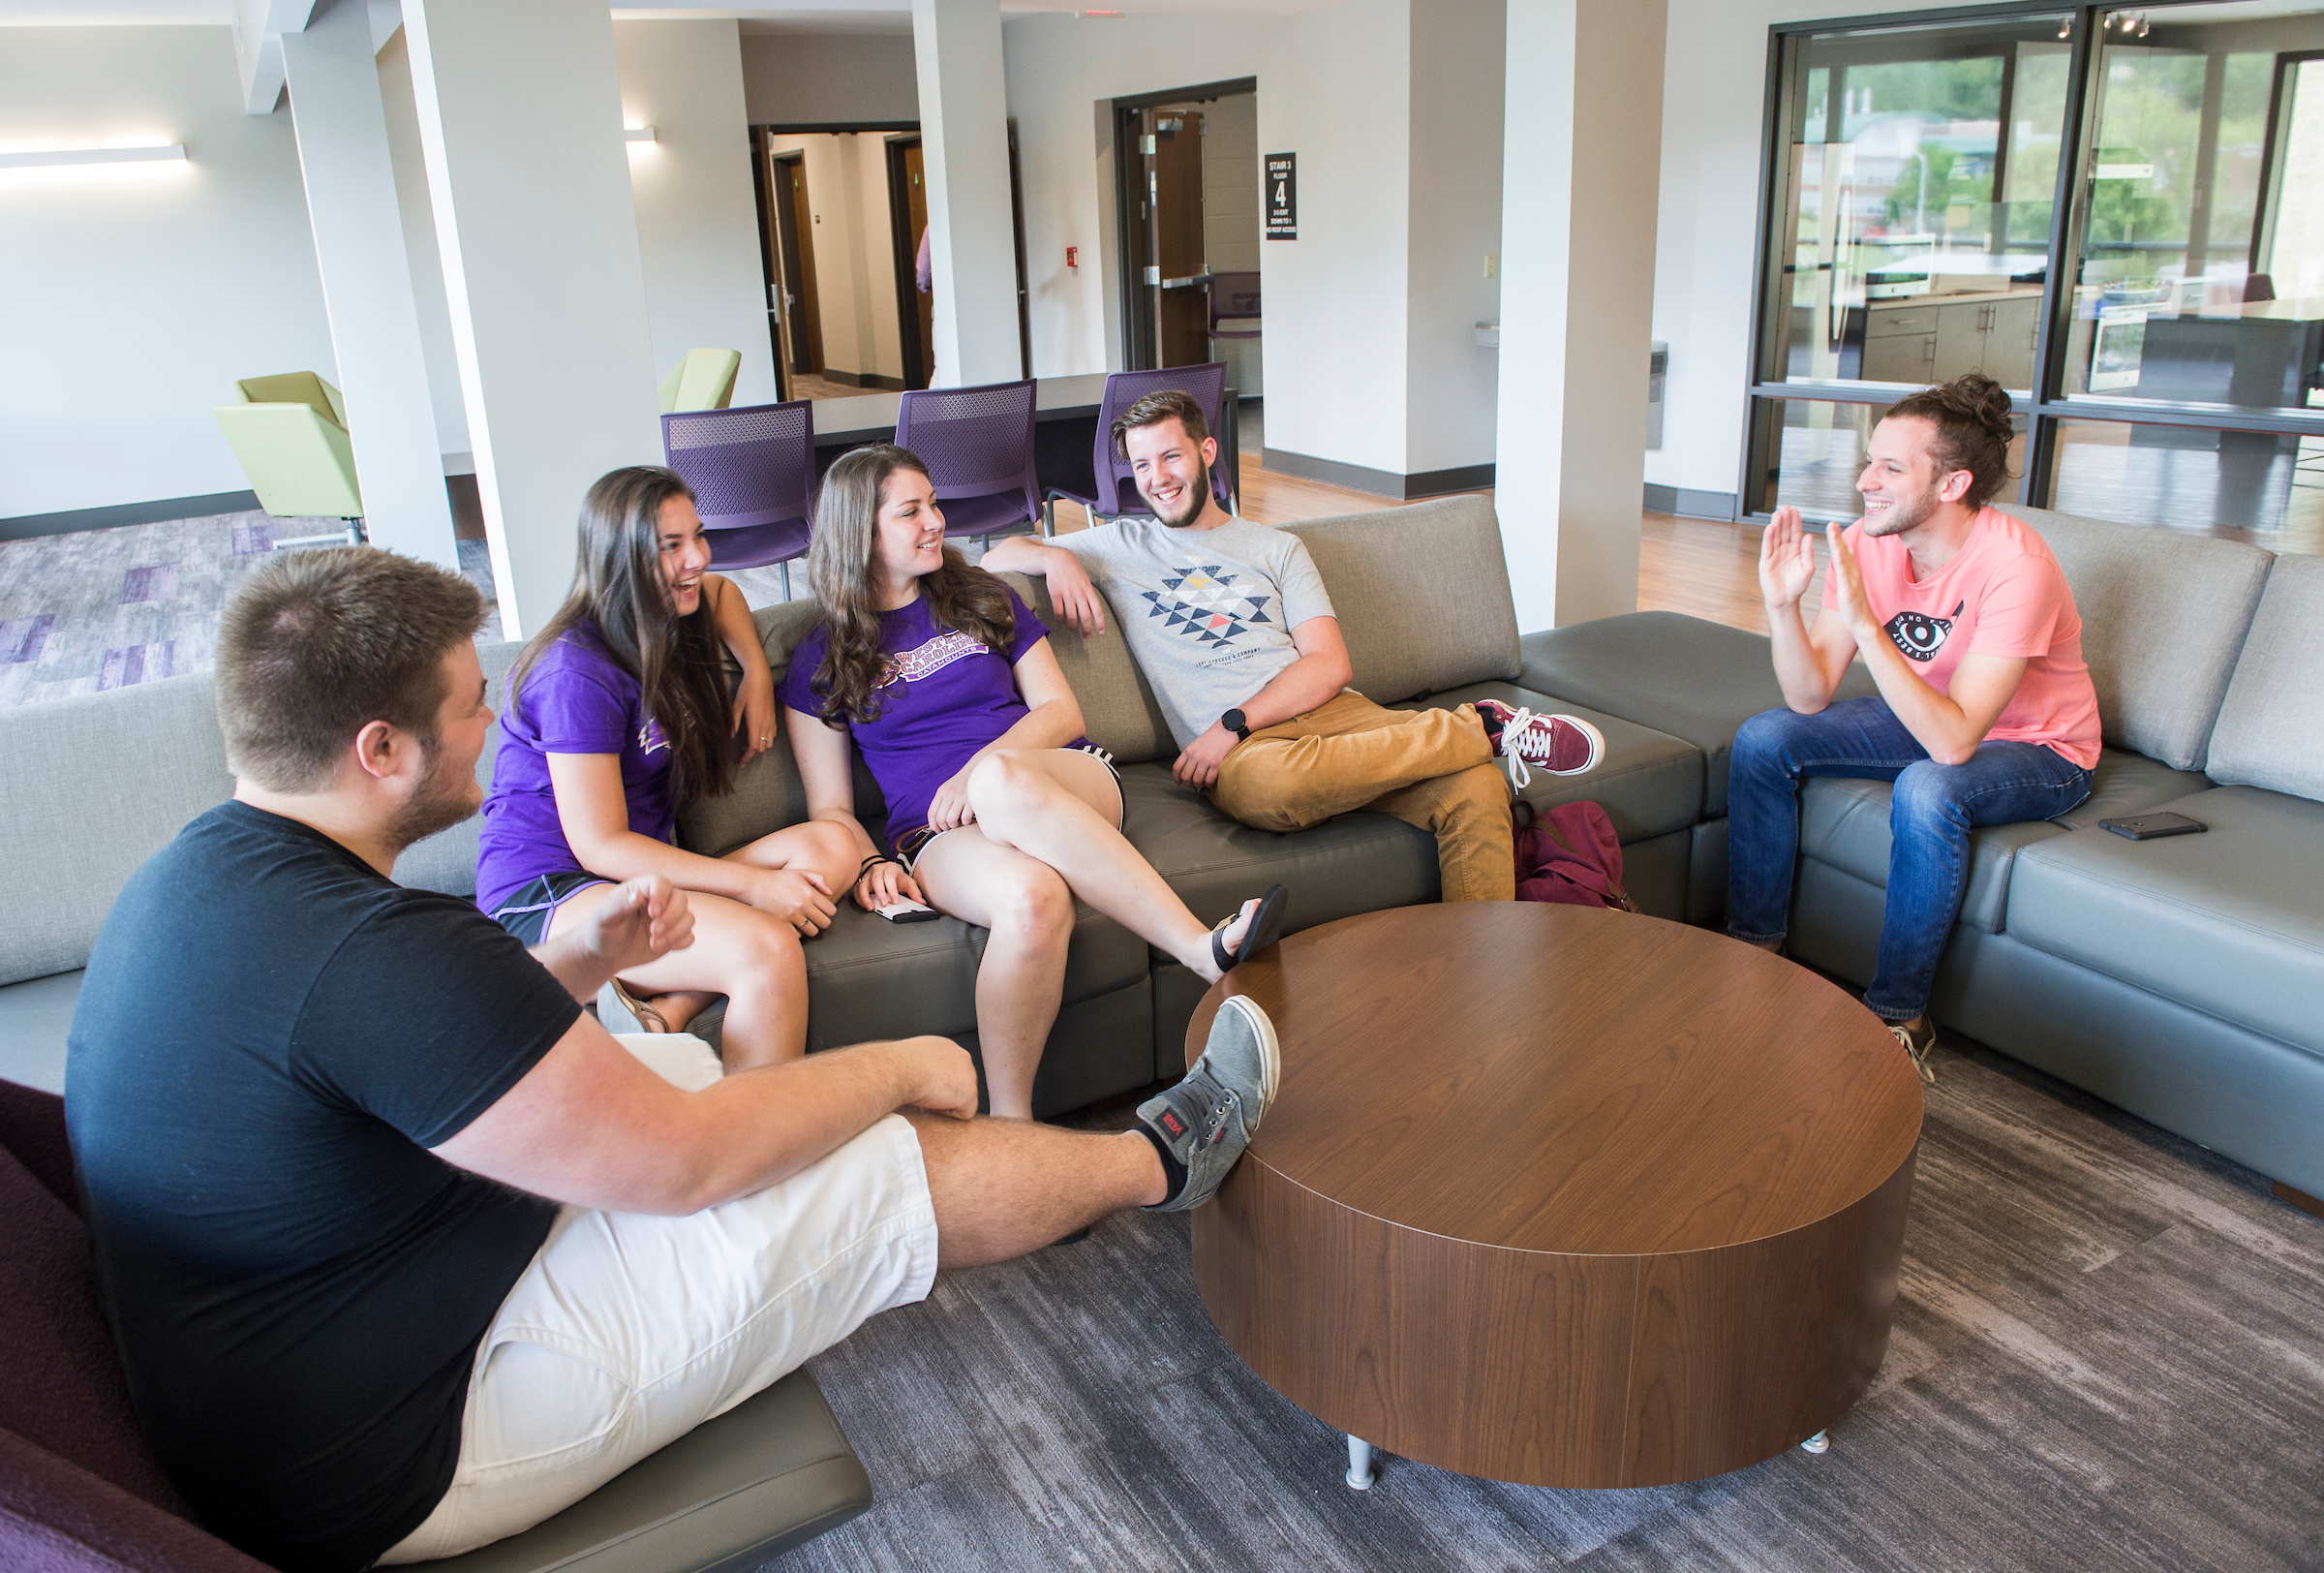 Students spending time, hanging out together in the common area of a Residence Hall